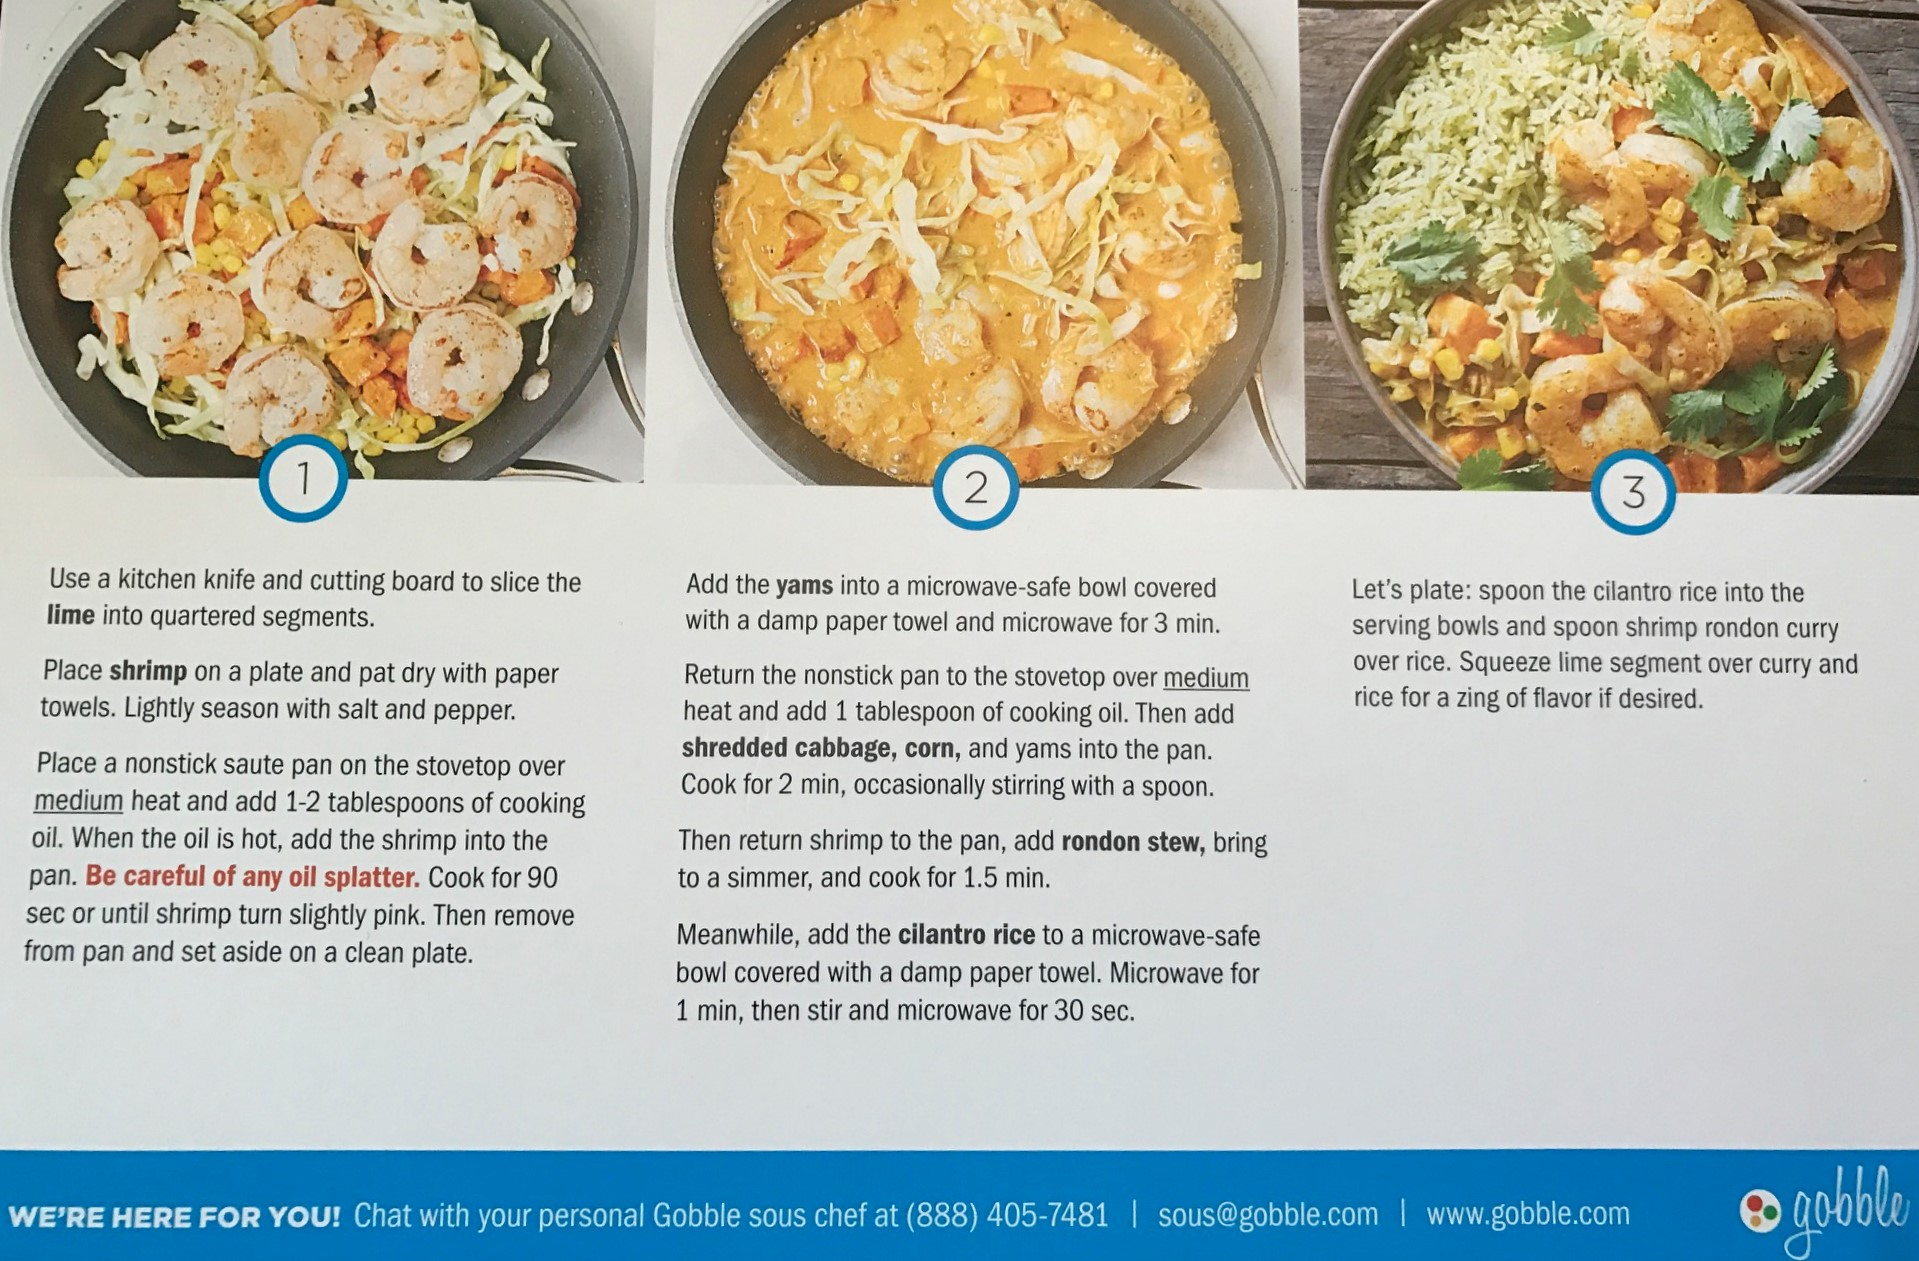 MK REVIEW: GOBBLE: Meal in 10 mins, 1 pan & 3 easy steps | Macaroni Kid